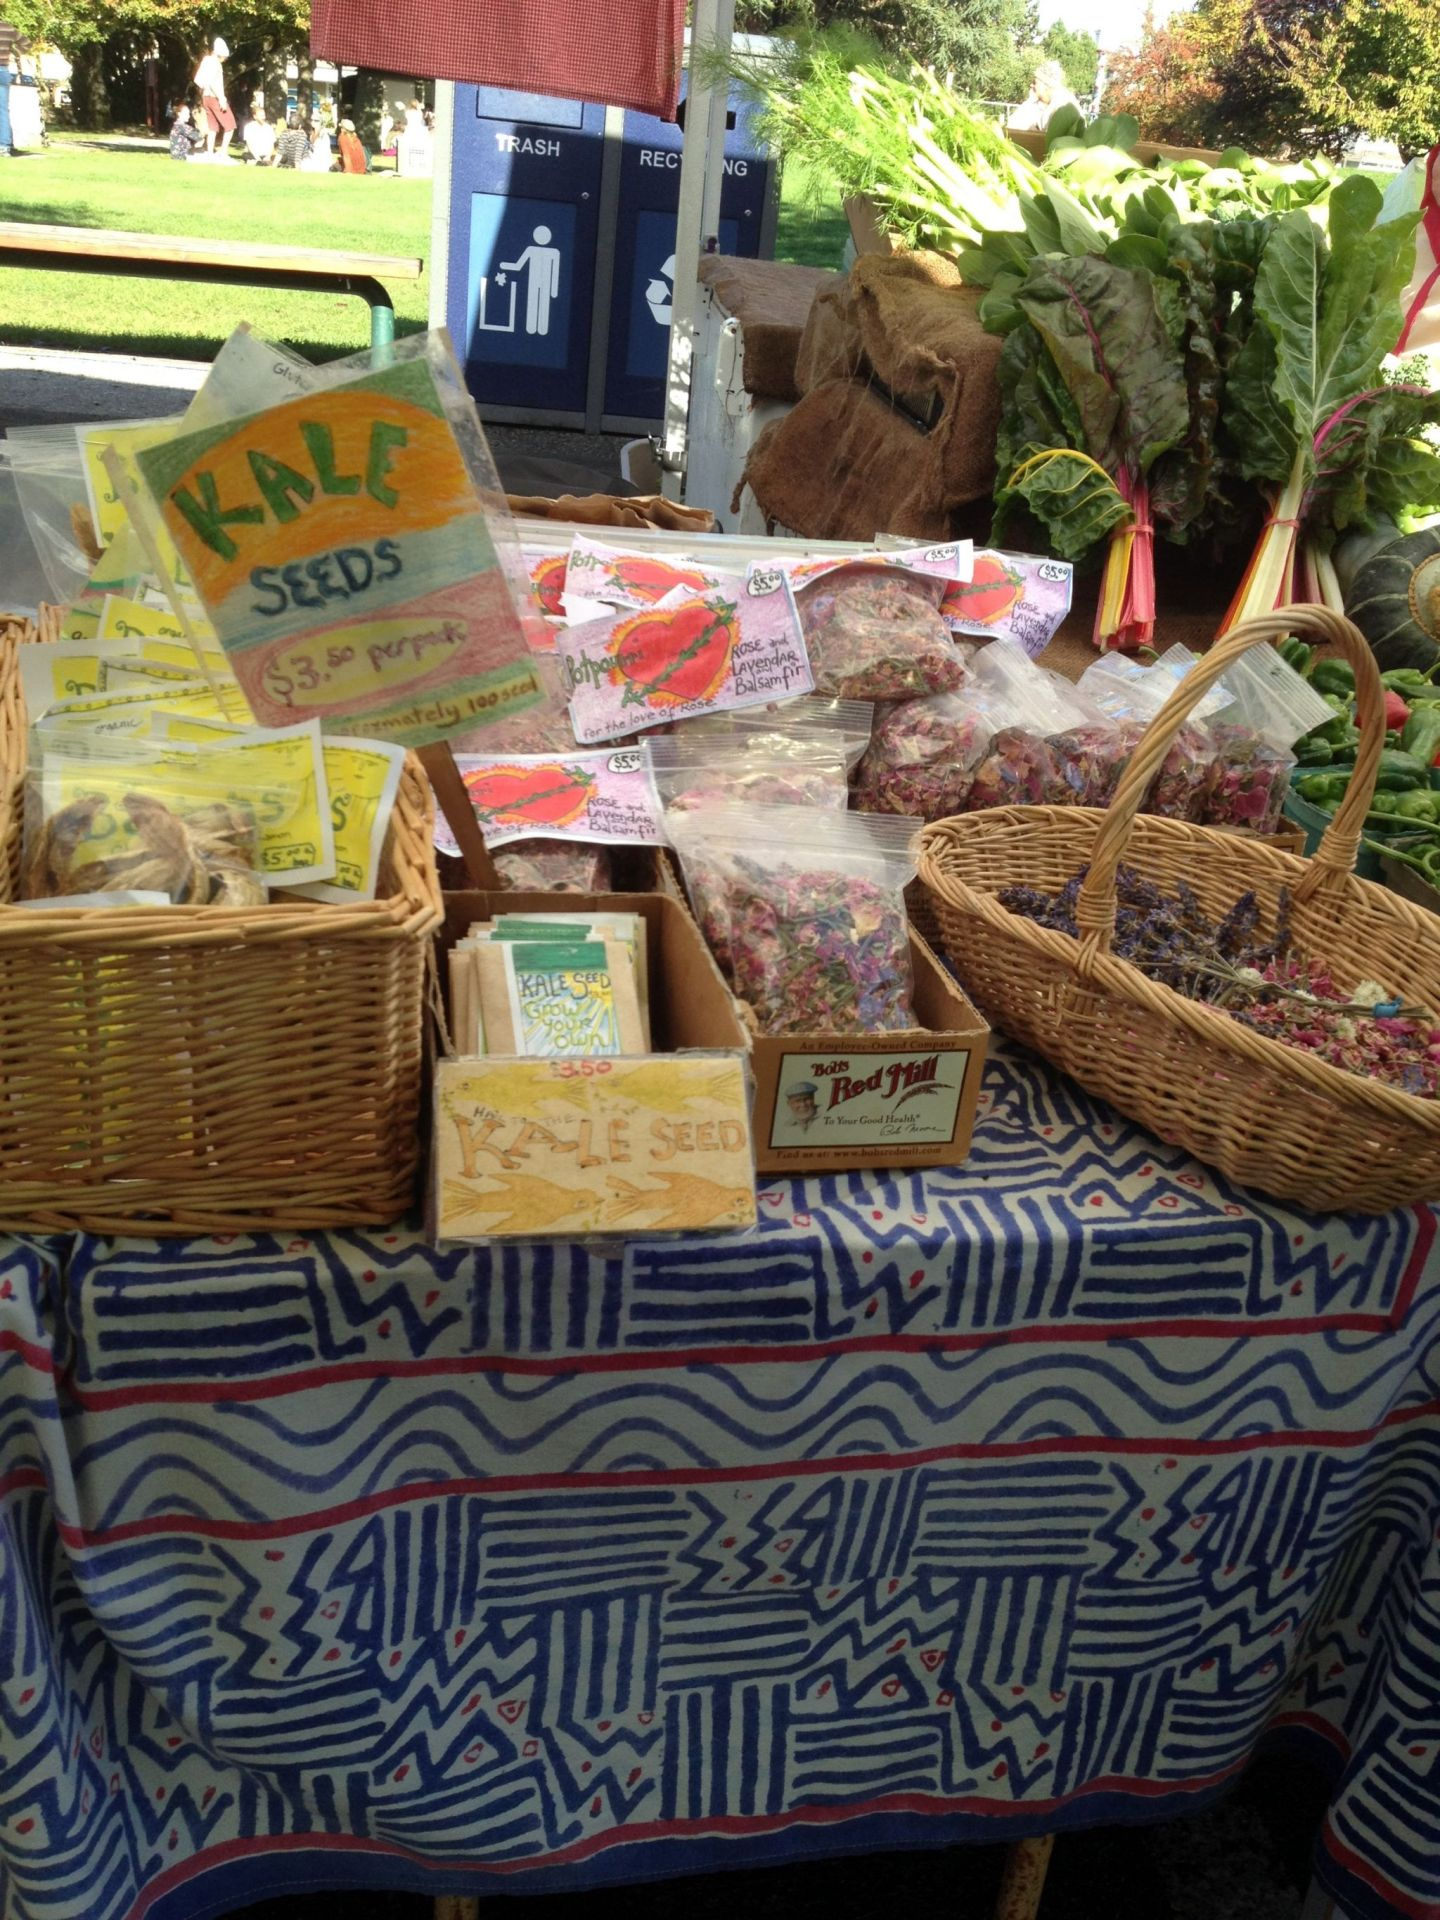 Fresh organic produce at Salt Spring Island Saturday market, British Columbia